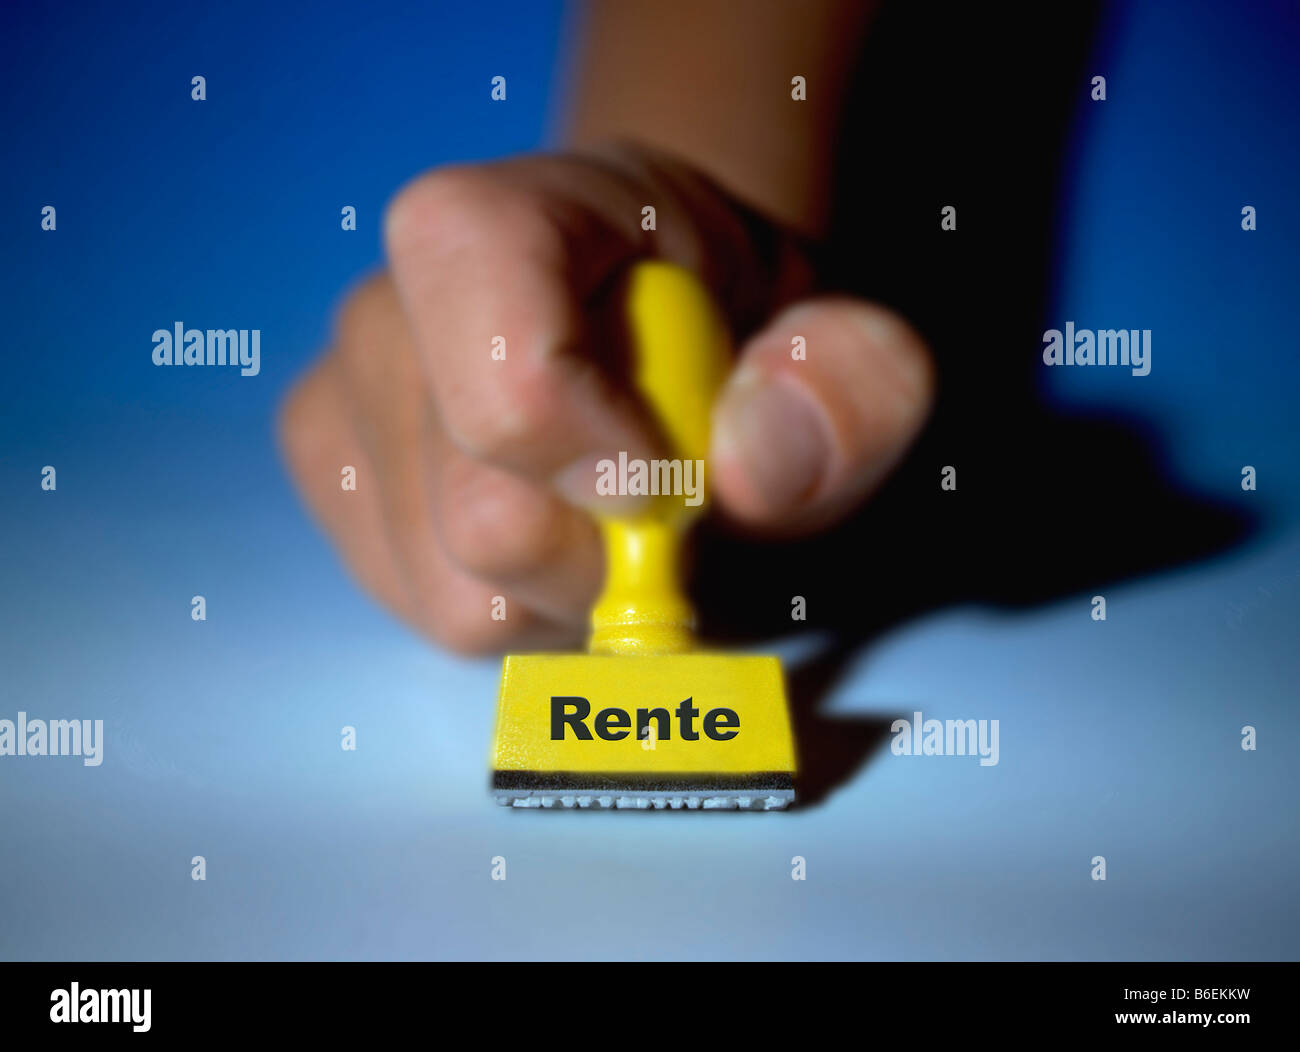 digital enhancement rubber stamp marked in german rente means annuity - Stock Image